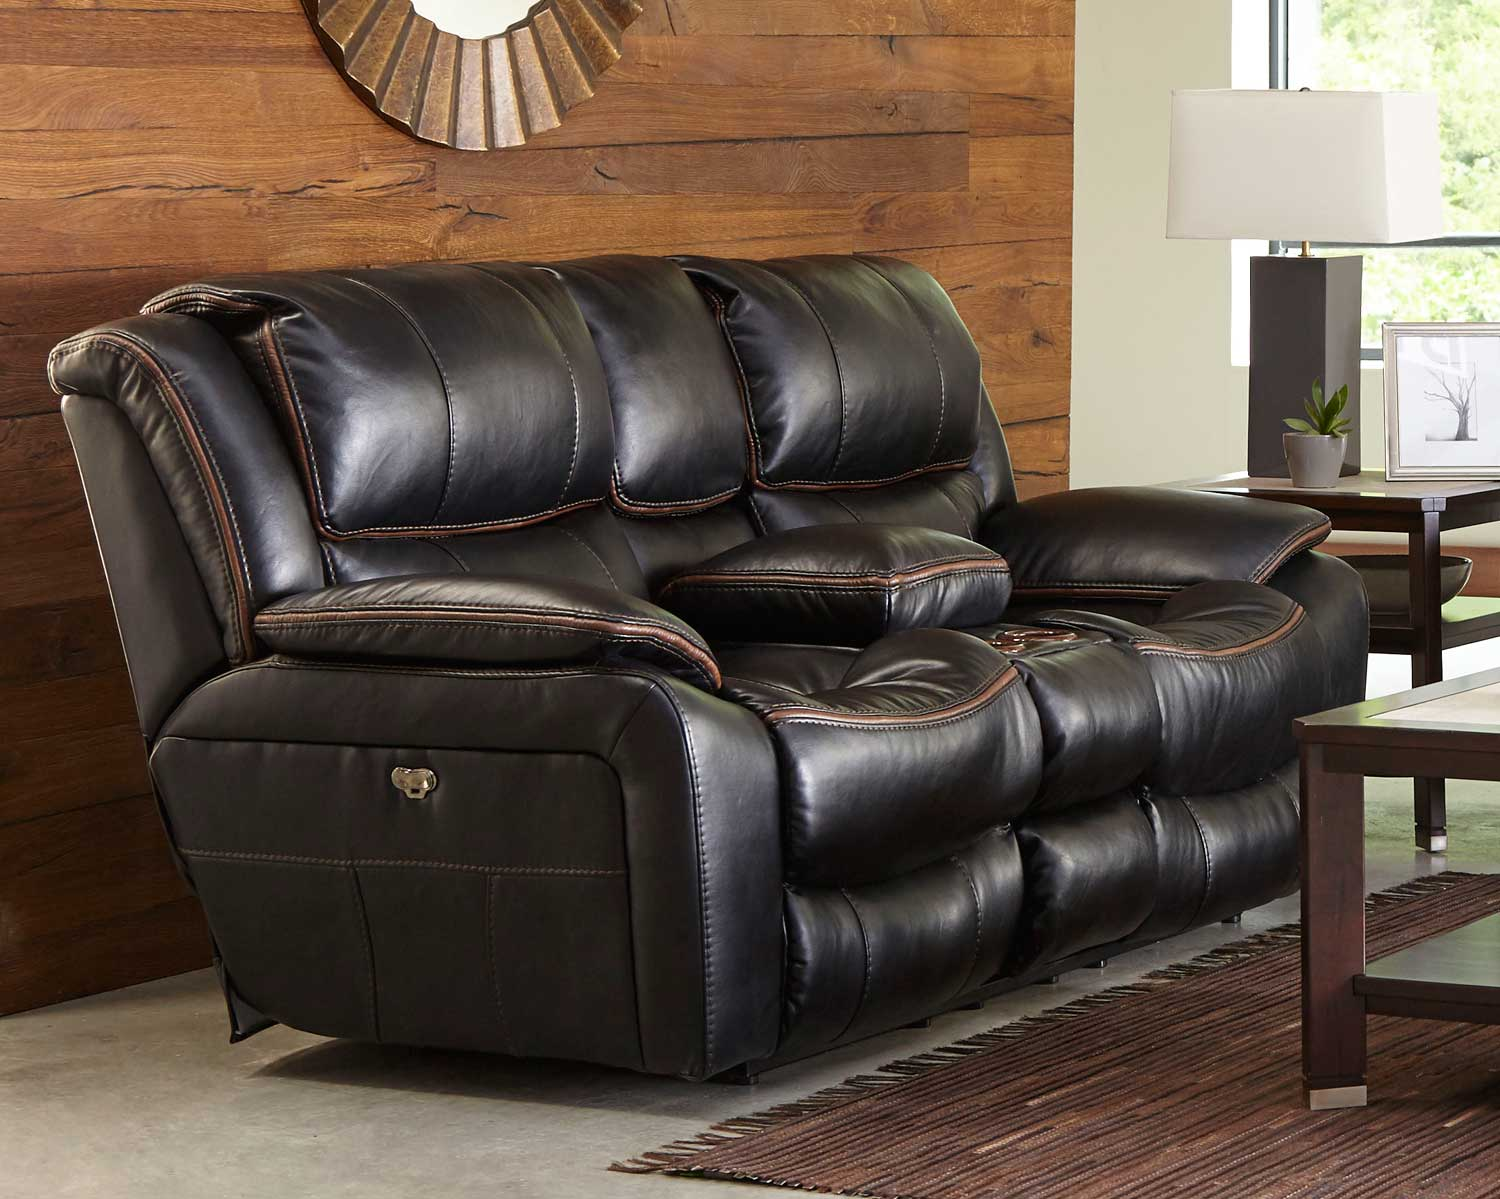 CatNapper Beckett Power Reclining Console Loveseat With Storage    Cupholders   USB Port   Black